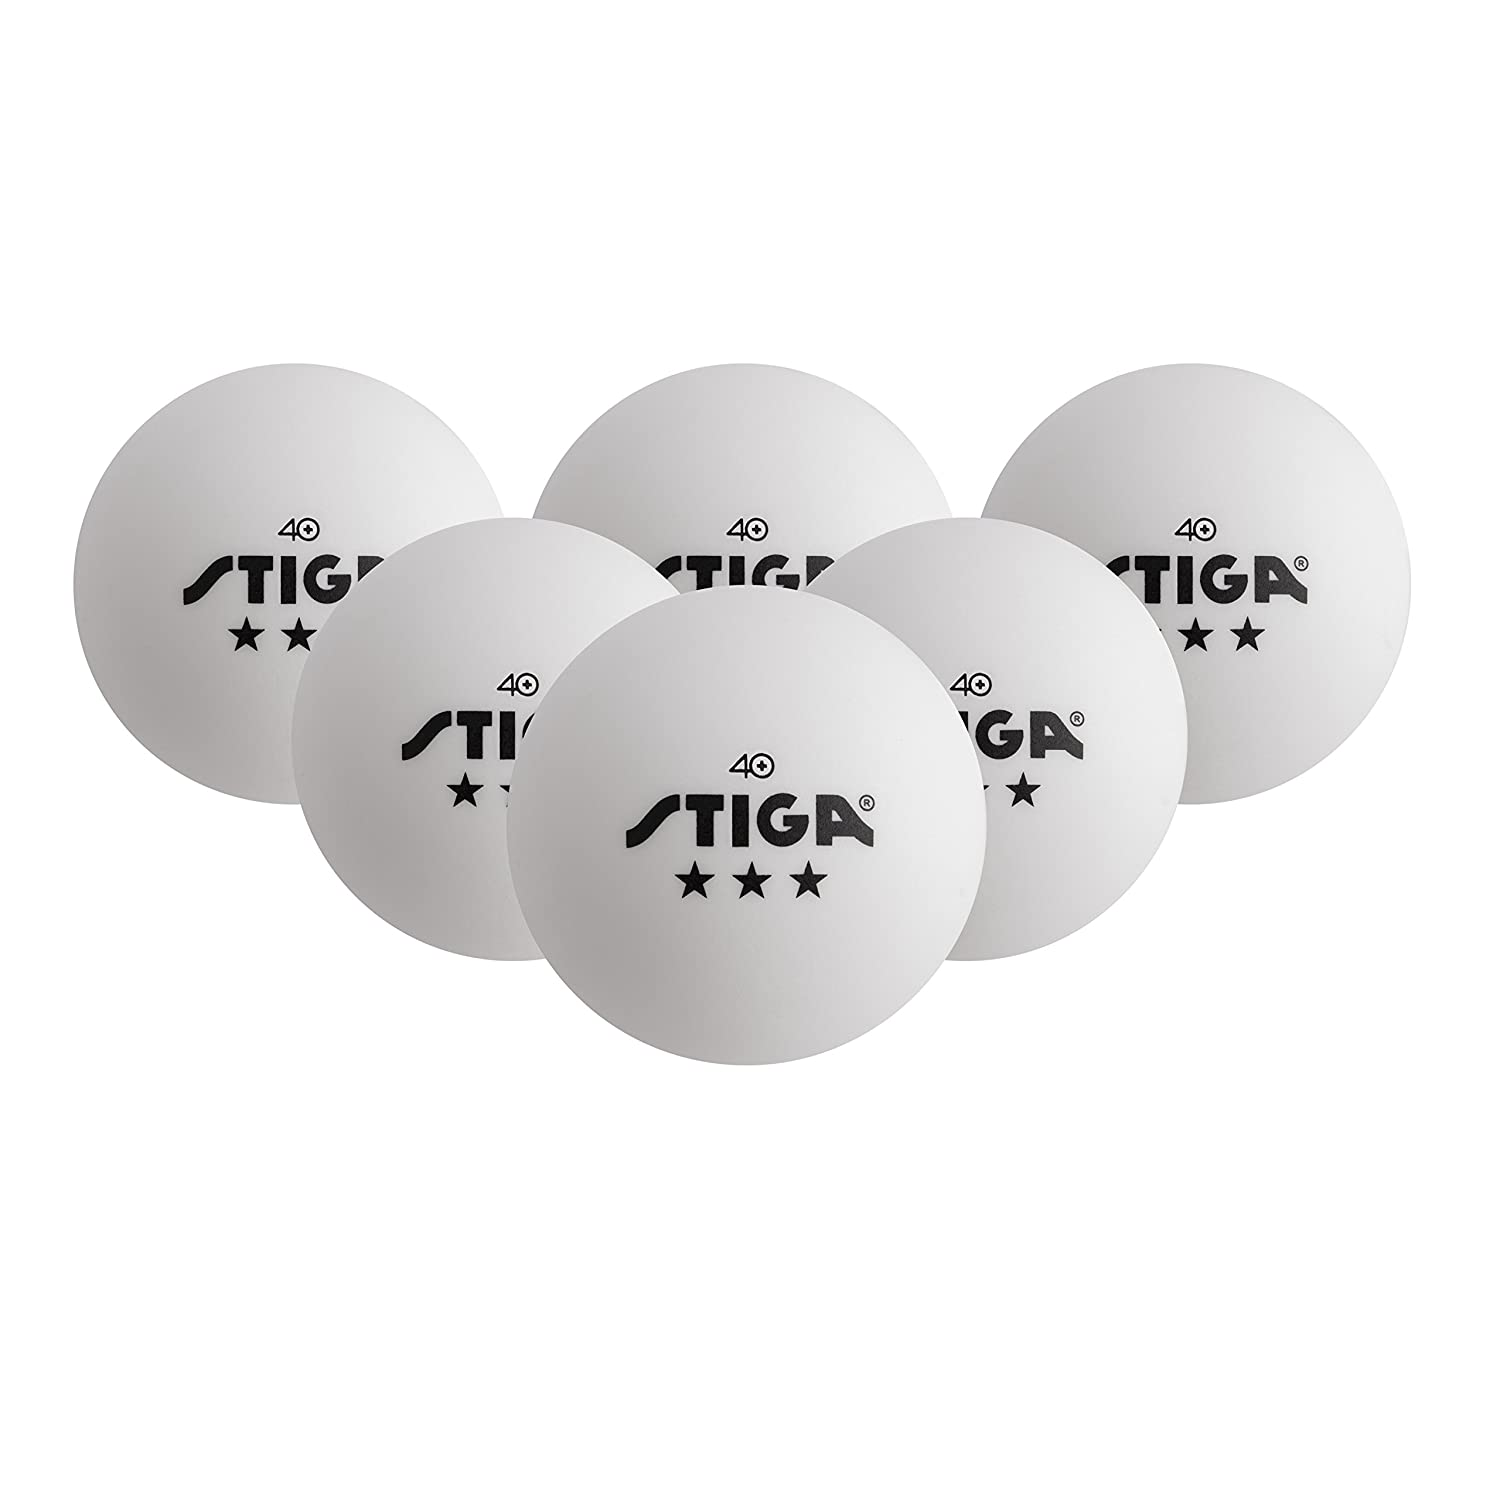 STIGA 3-Star White Table Tennis Balls for Tournament Play 6-Pack